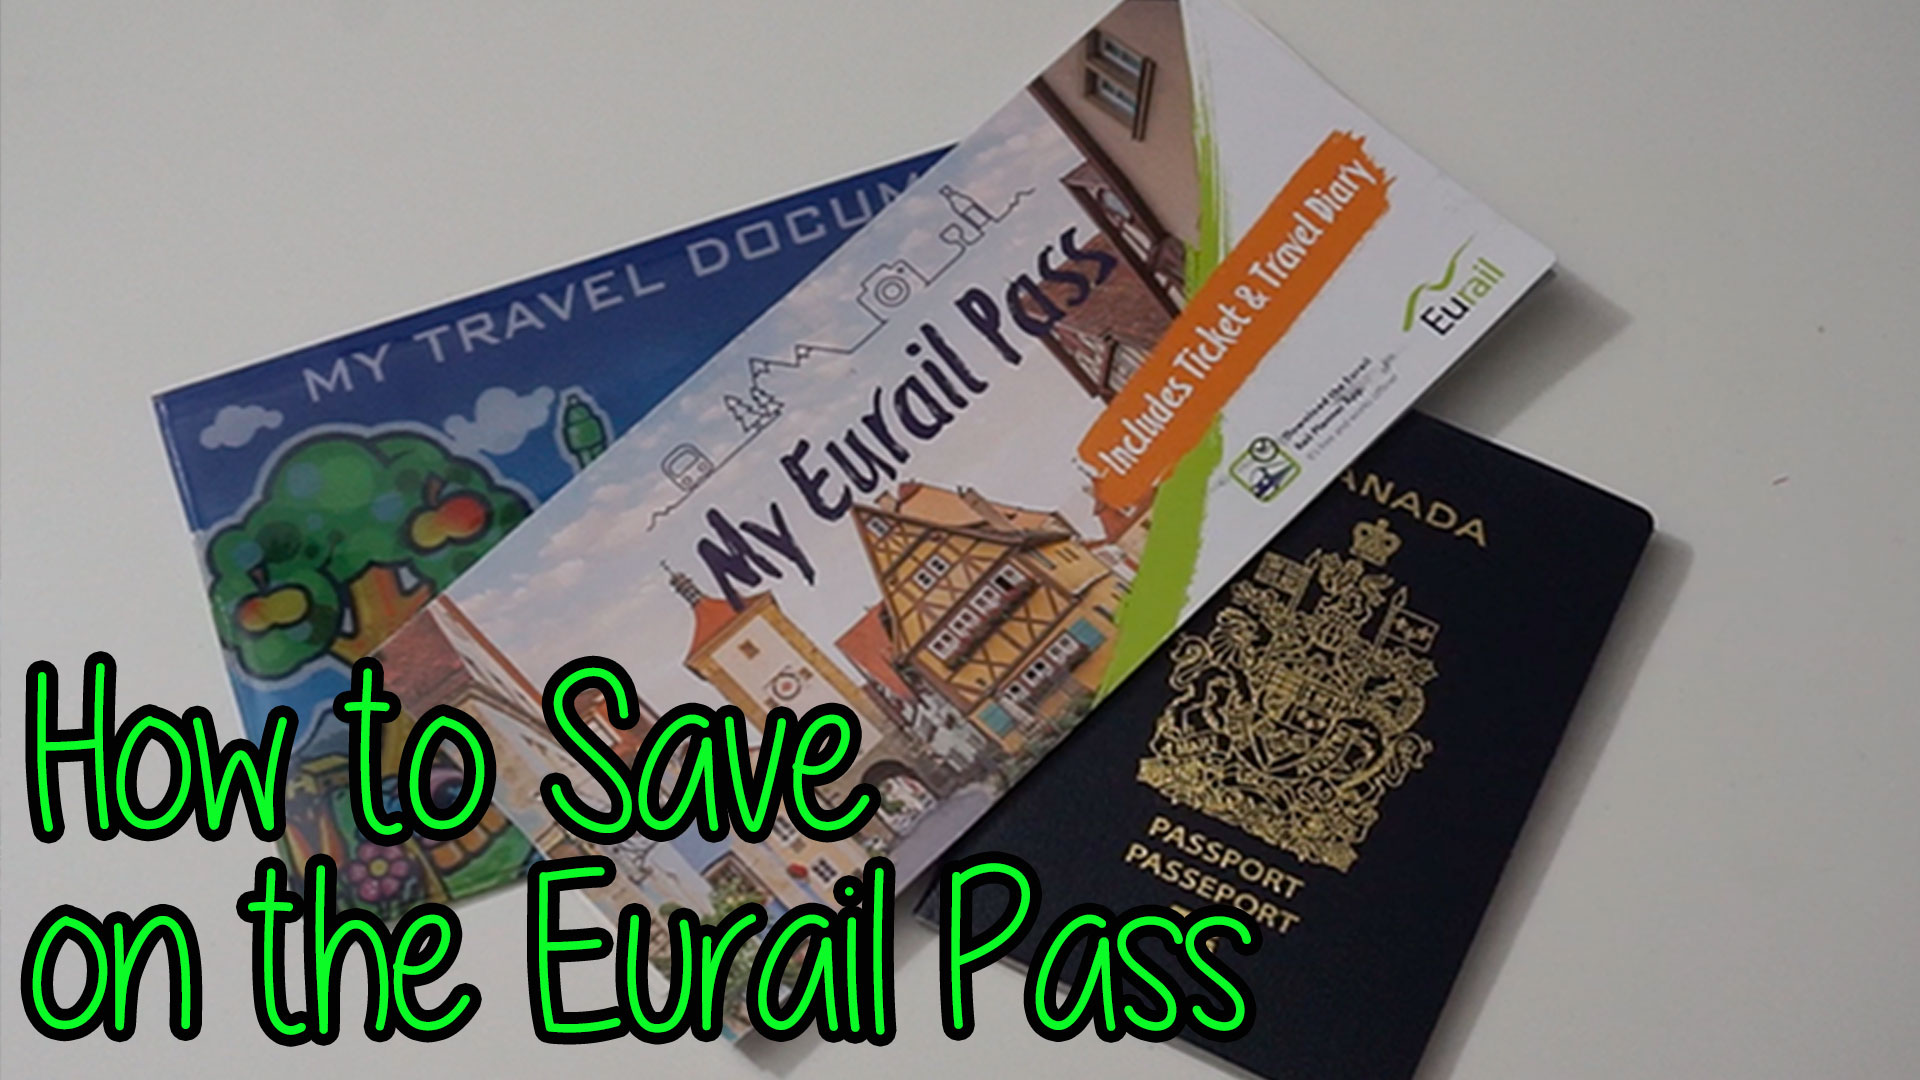 How-to-Save-on-Eurail-Pass